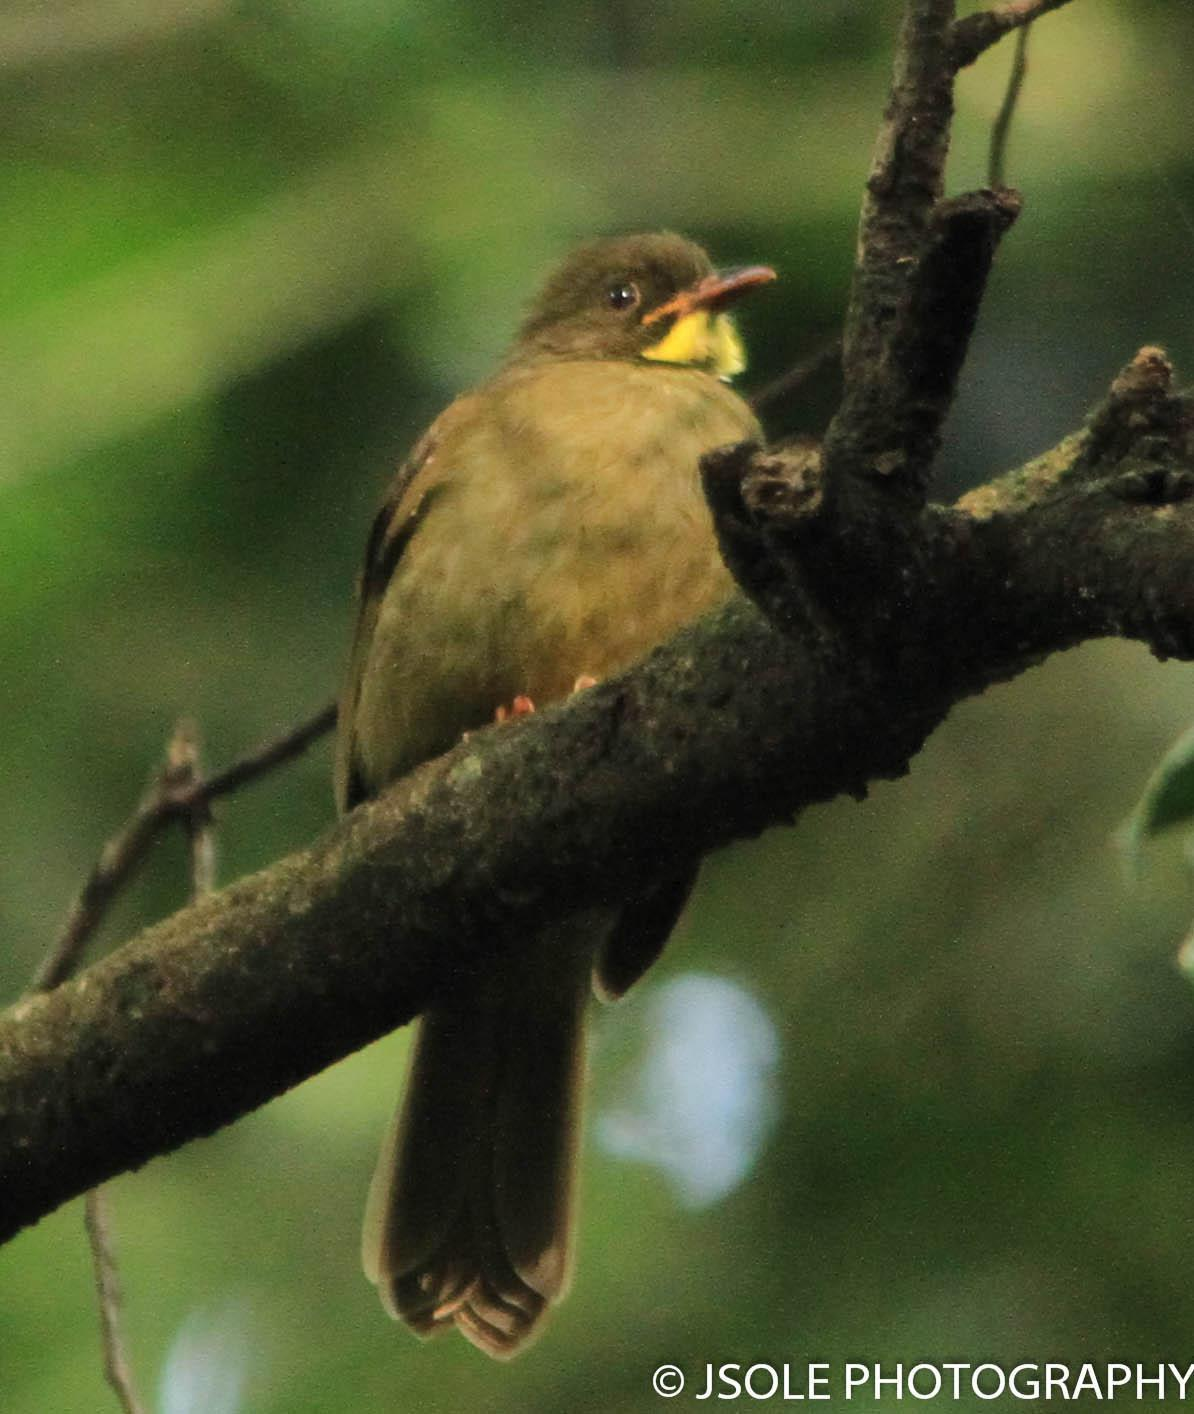 Yellow-whiskered Greenbul Photo by Jeffery Sole